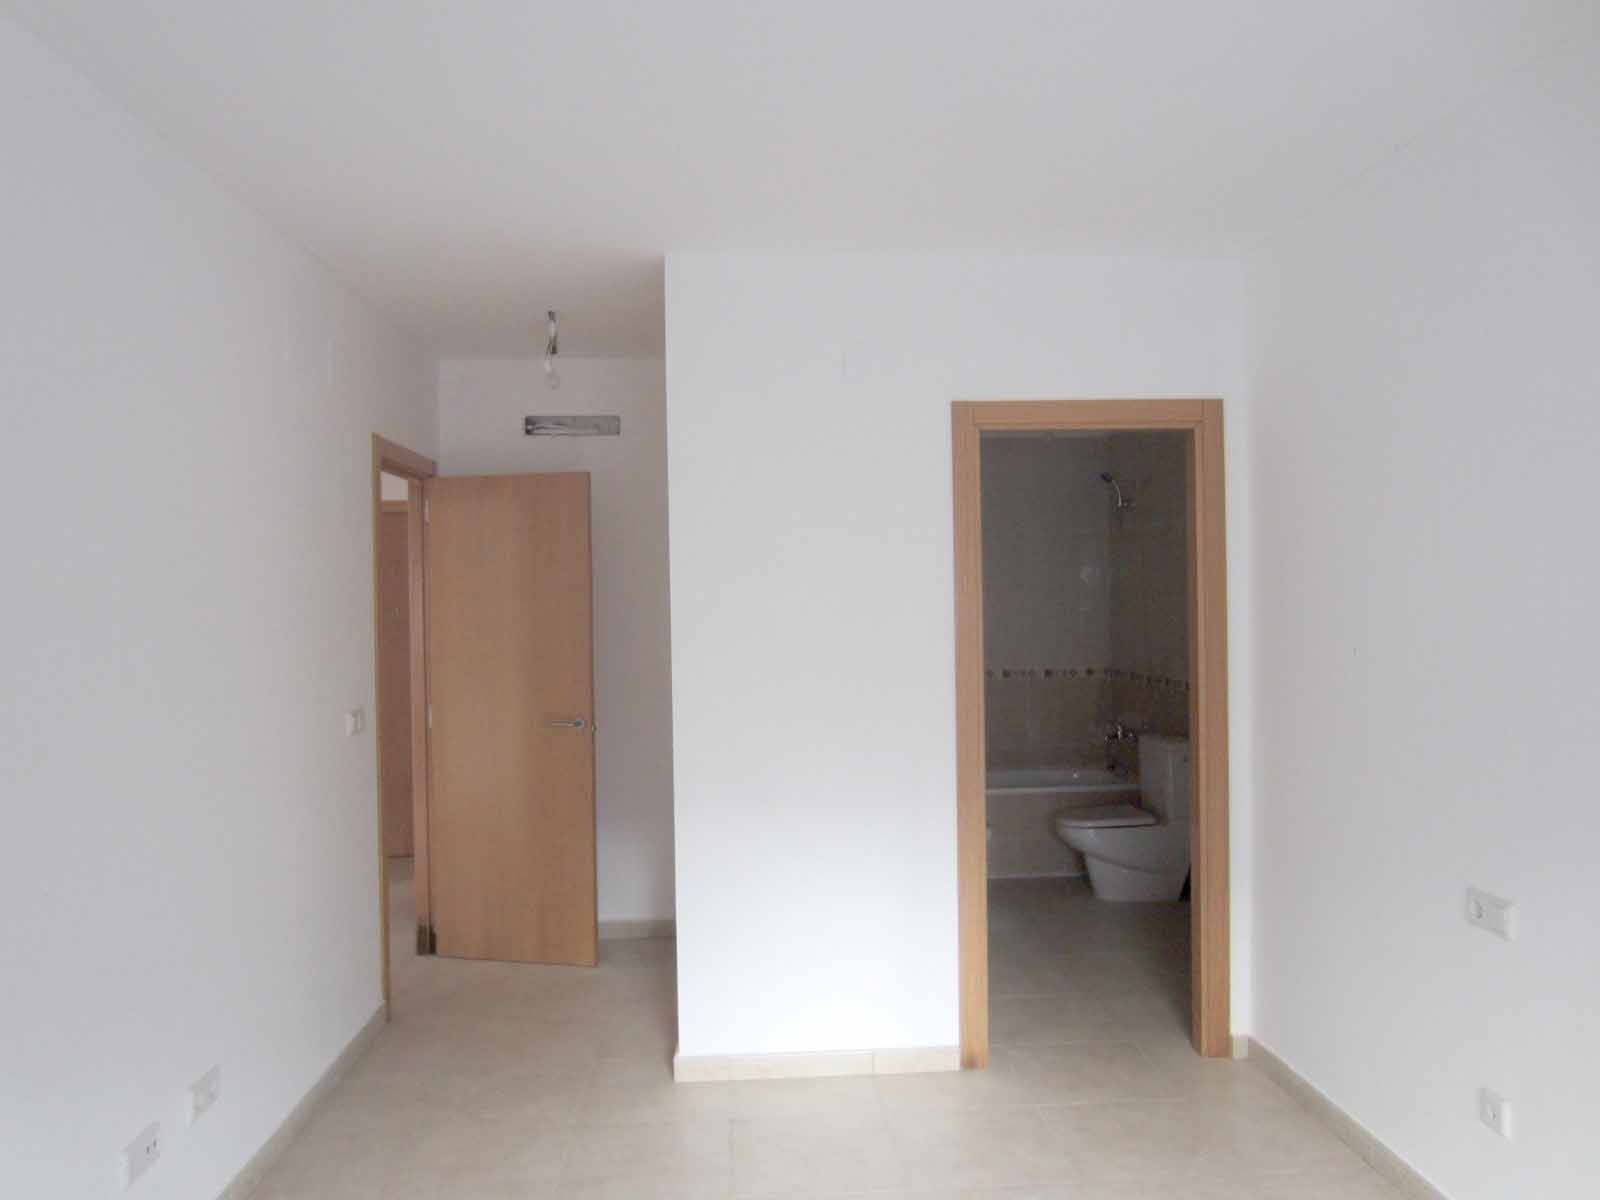 Photo  number 7: Flat / Apartment in Sale in Pedreguer, Area Centro. Ref. 5-18-14386 (CB-34468-0001)